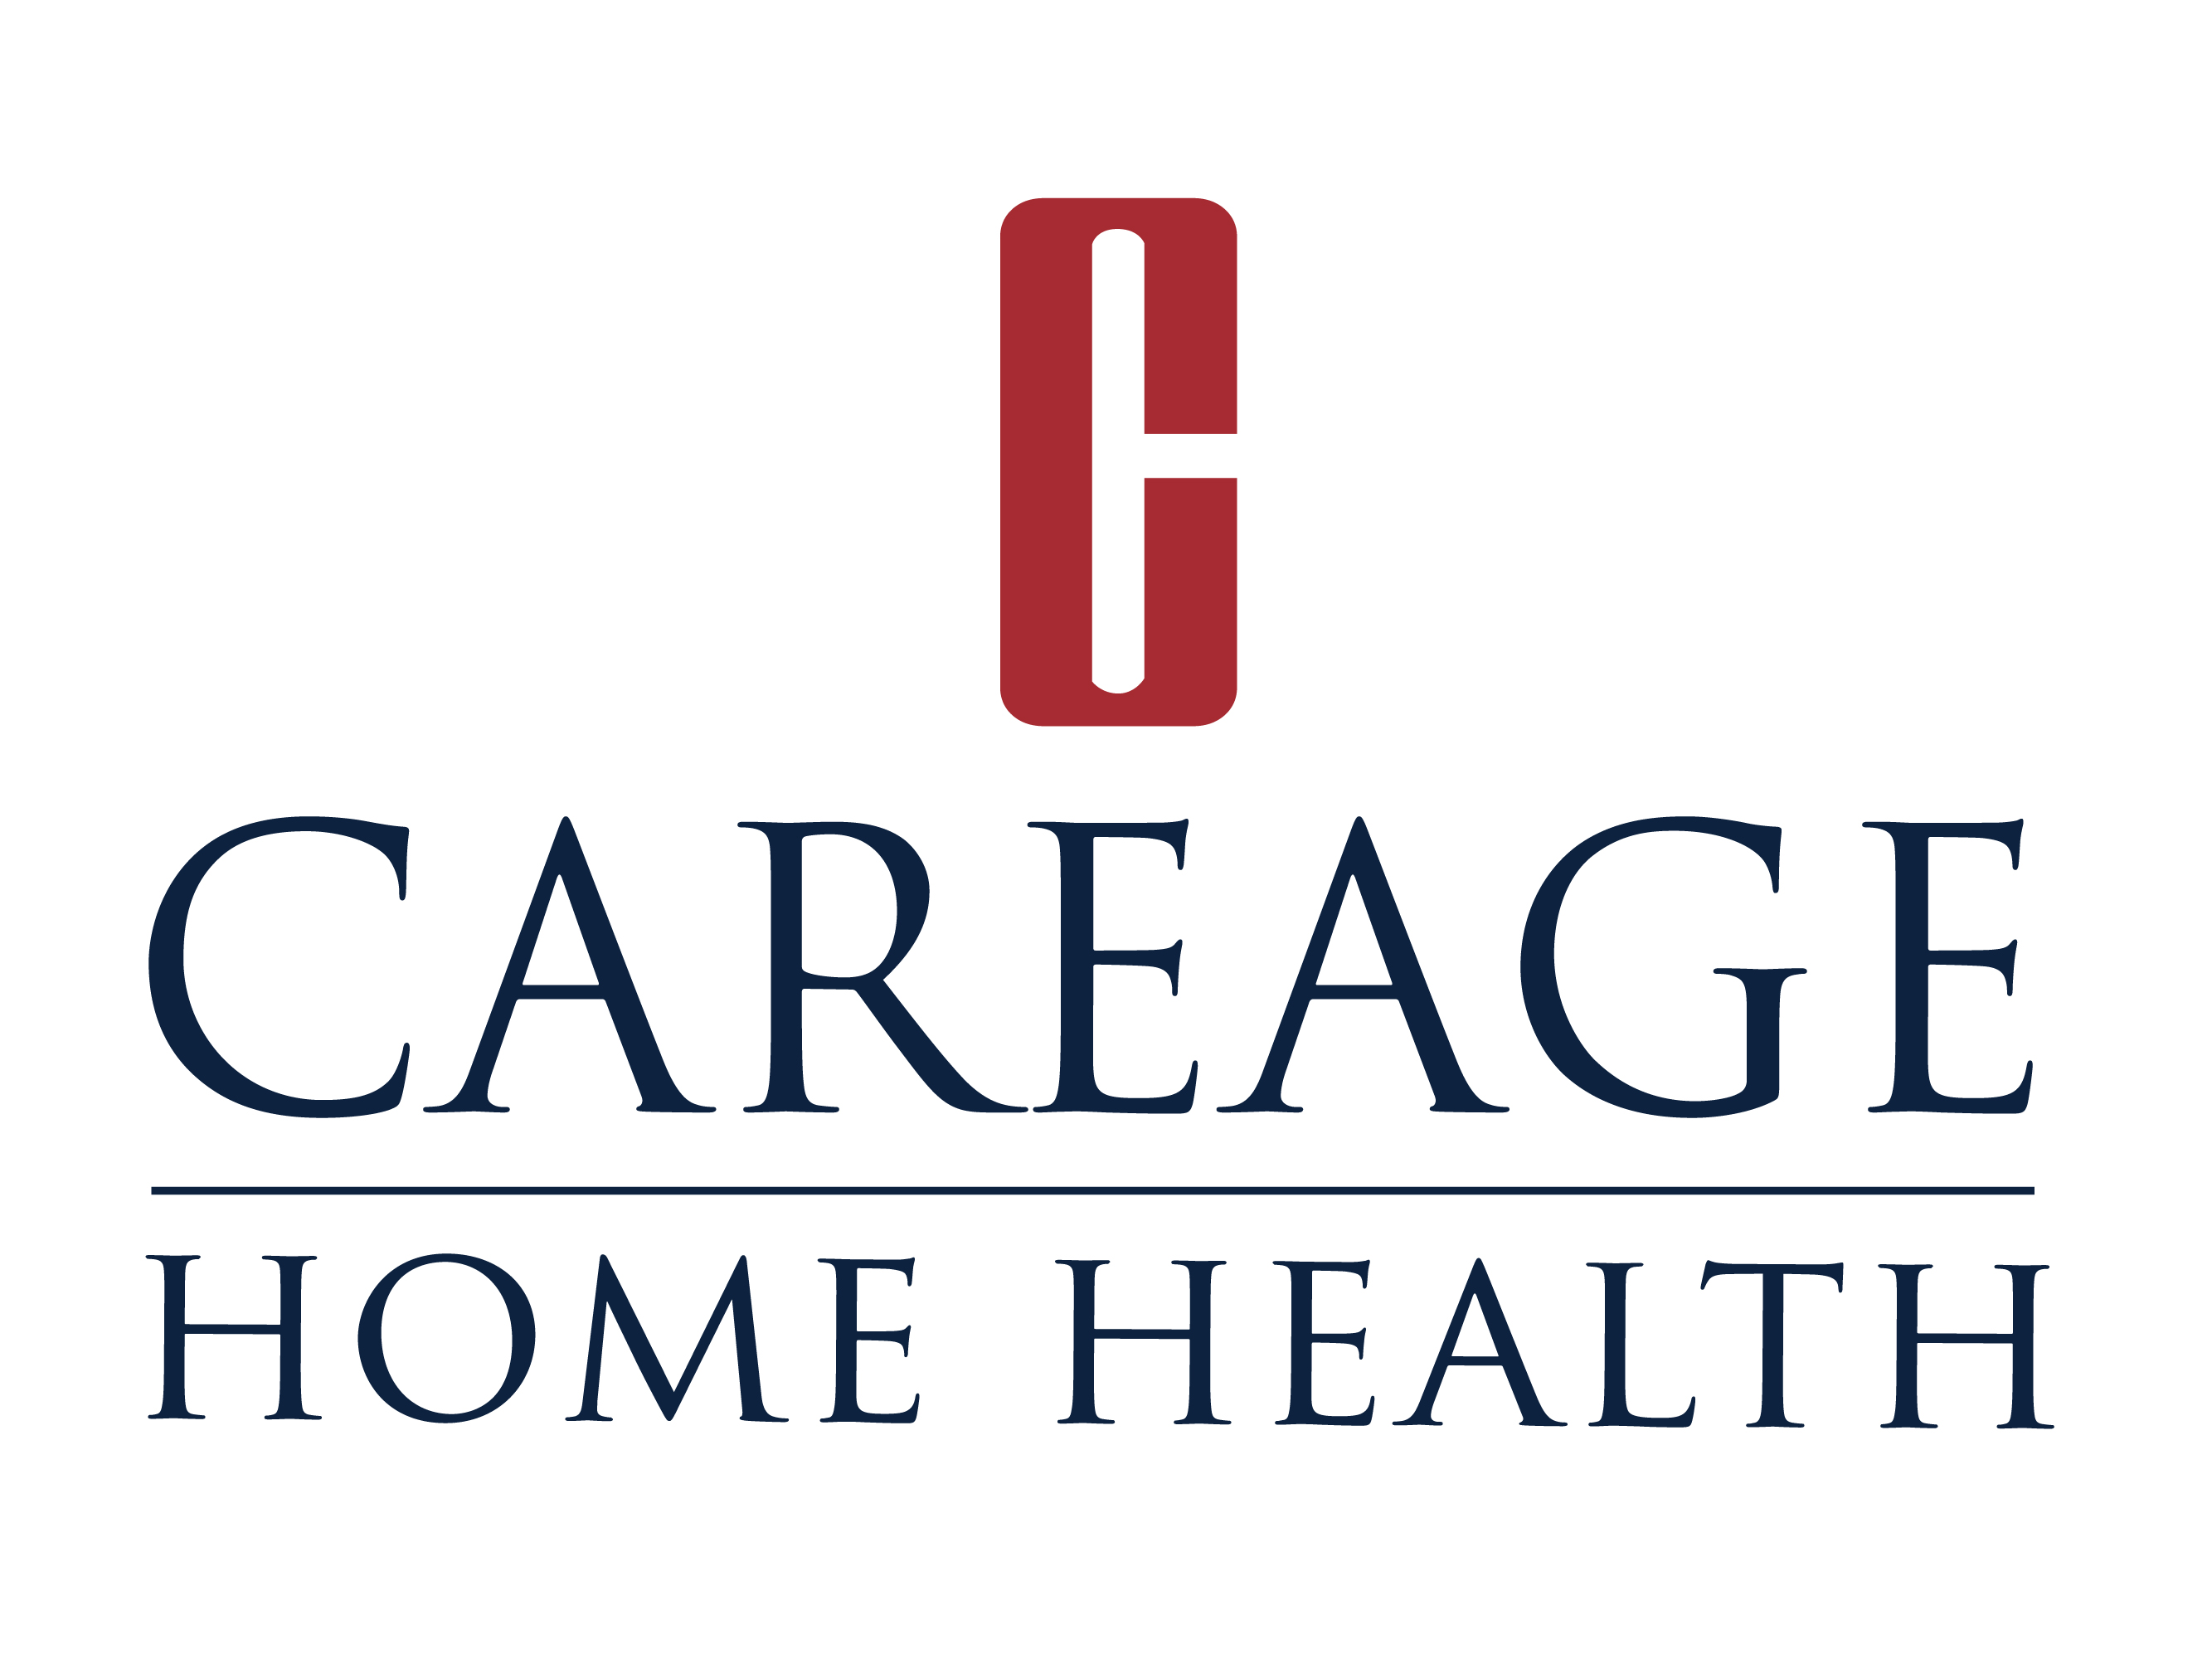 Careage Home Health – A Careage Service Agency